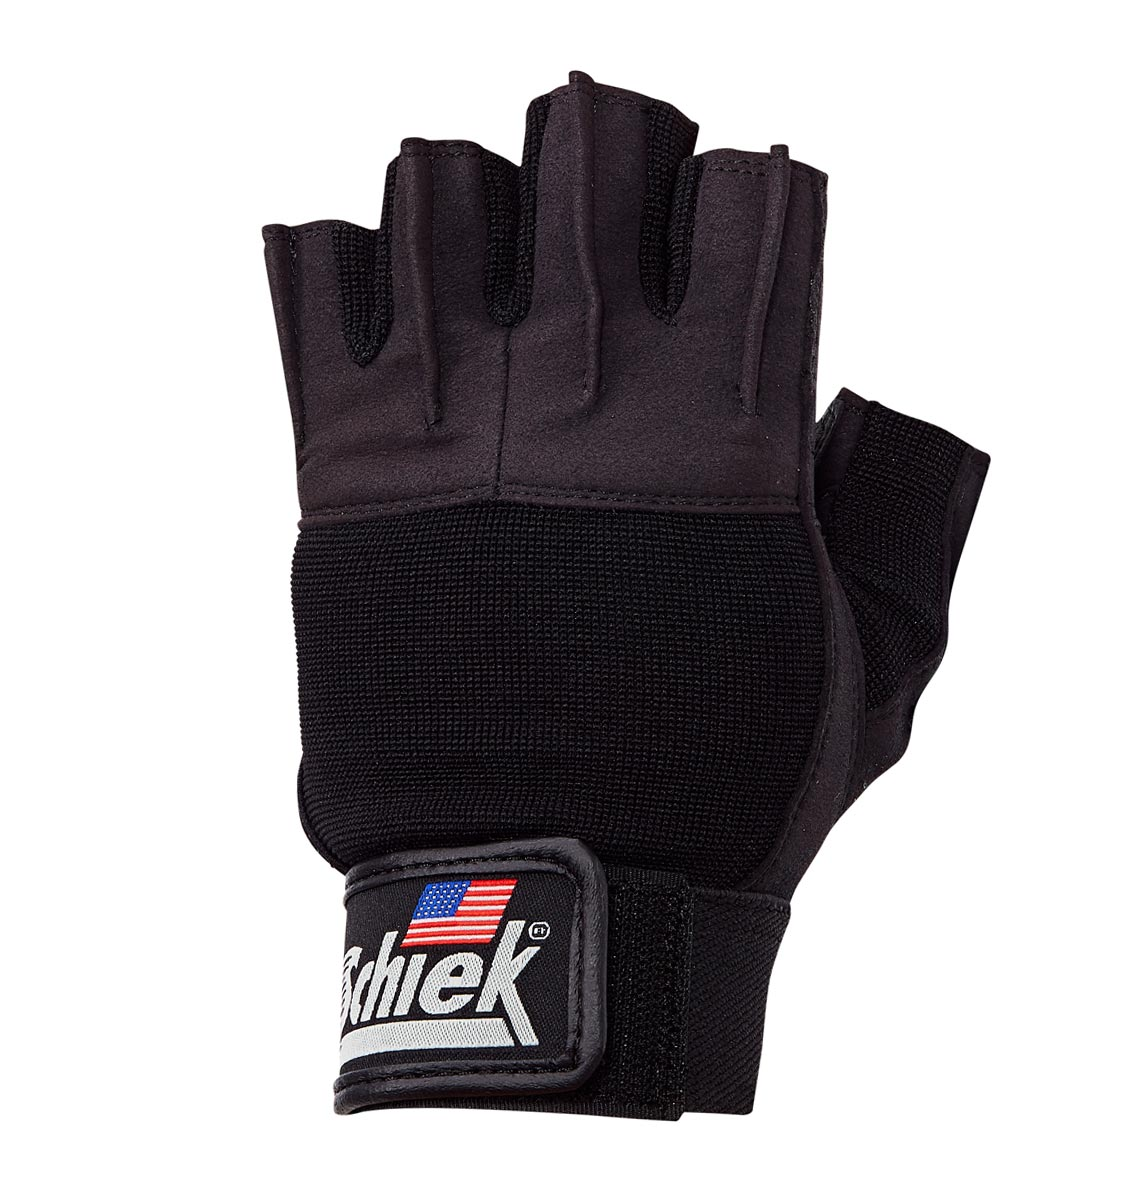 520 Schiek Womens Platinum Series Lifting Gym Gloves with Fins Left Top